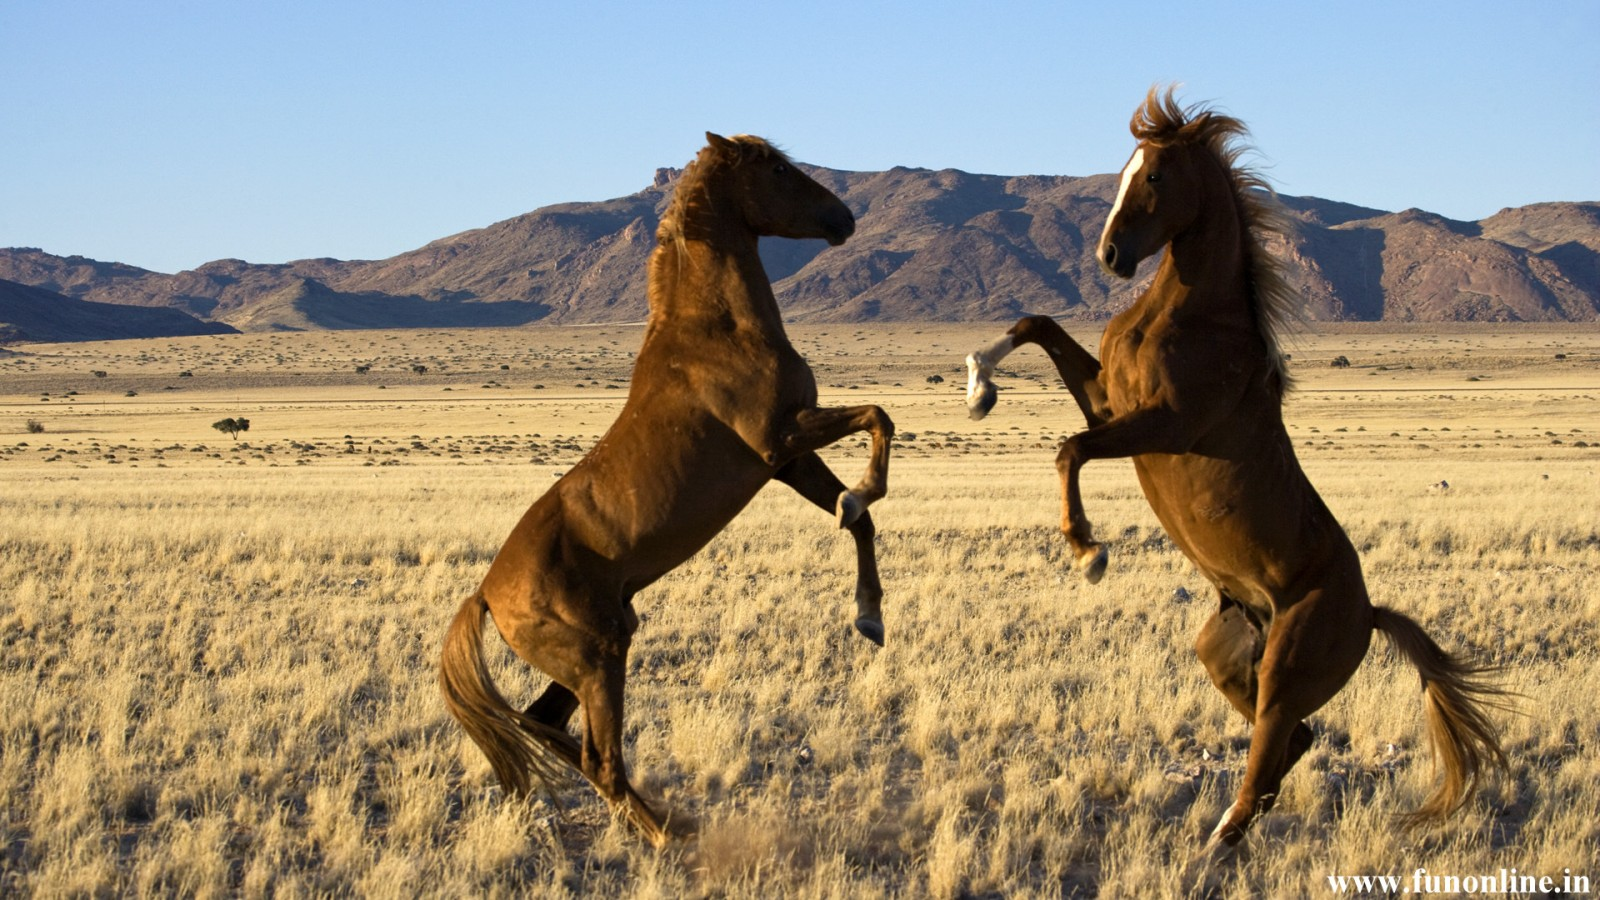 Great   Wallpaper Horse Rose - wild+horses+wallpapers+21  Trends_701330.jpg